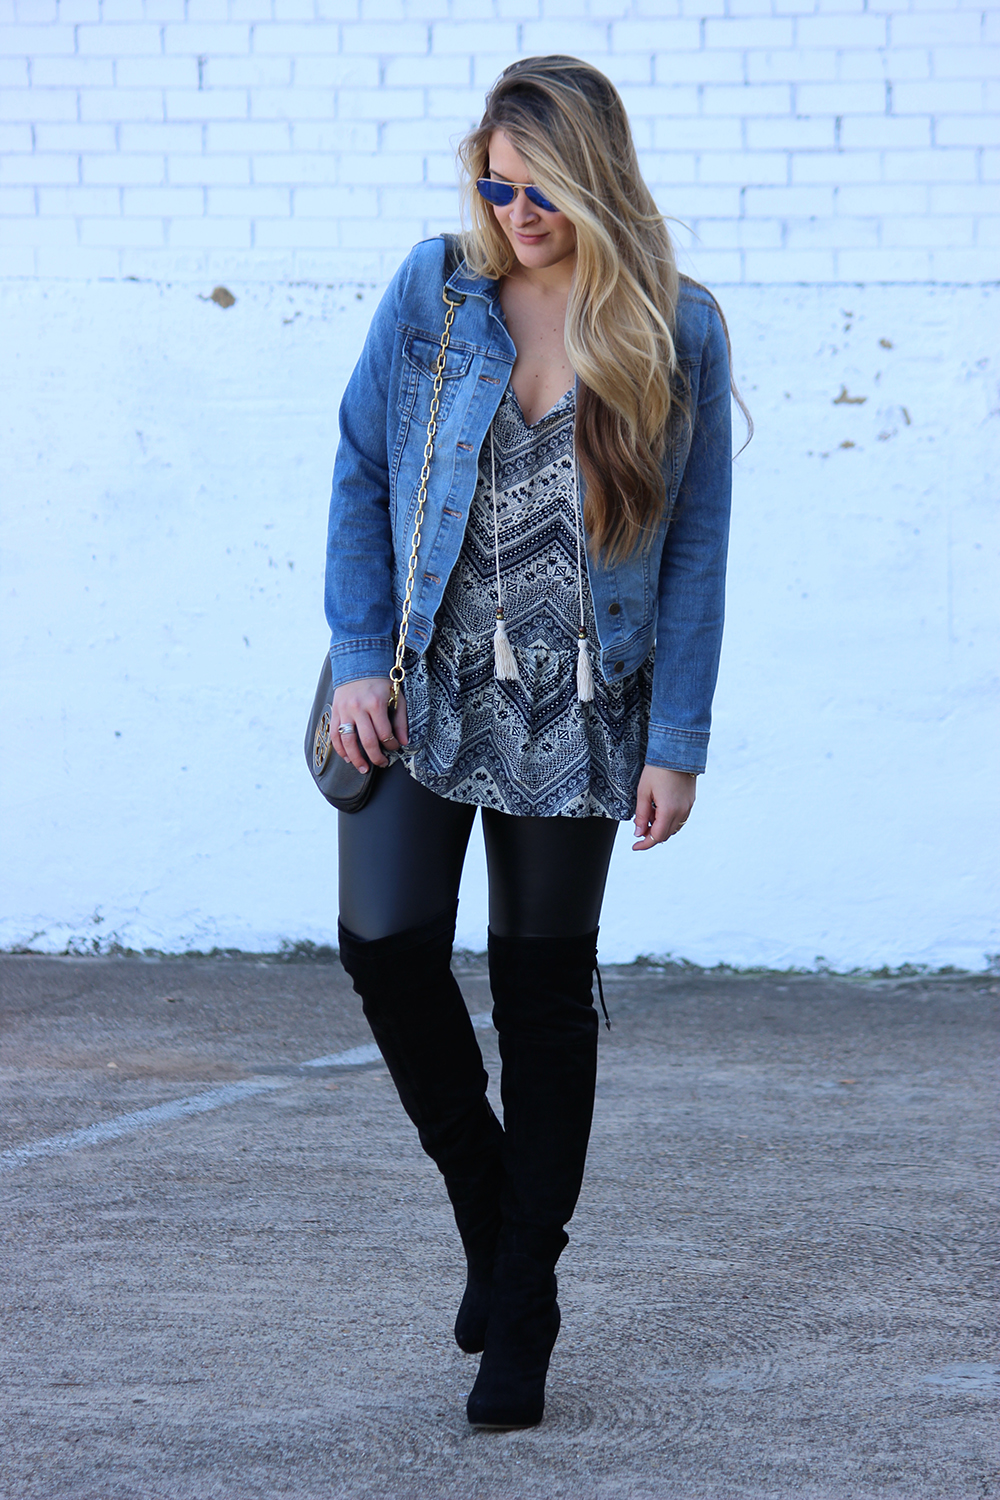 Faux Leather Leggings and Over the Knee Boots | Cameron Proffitt